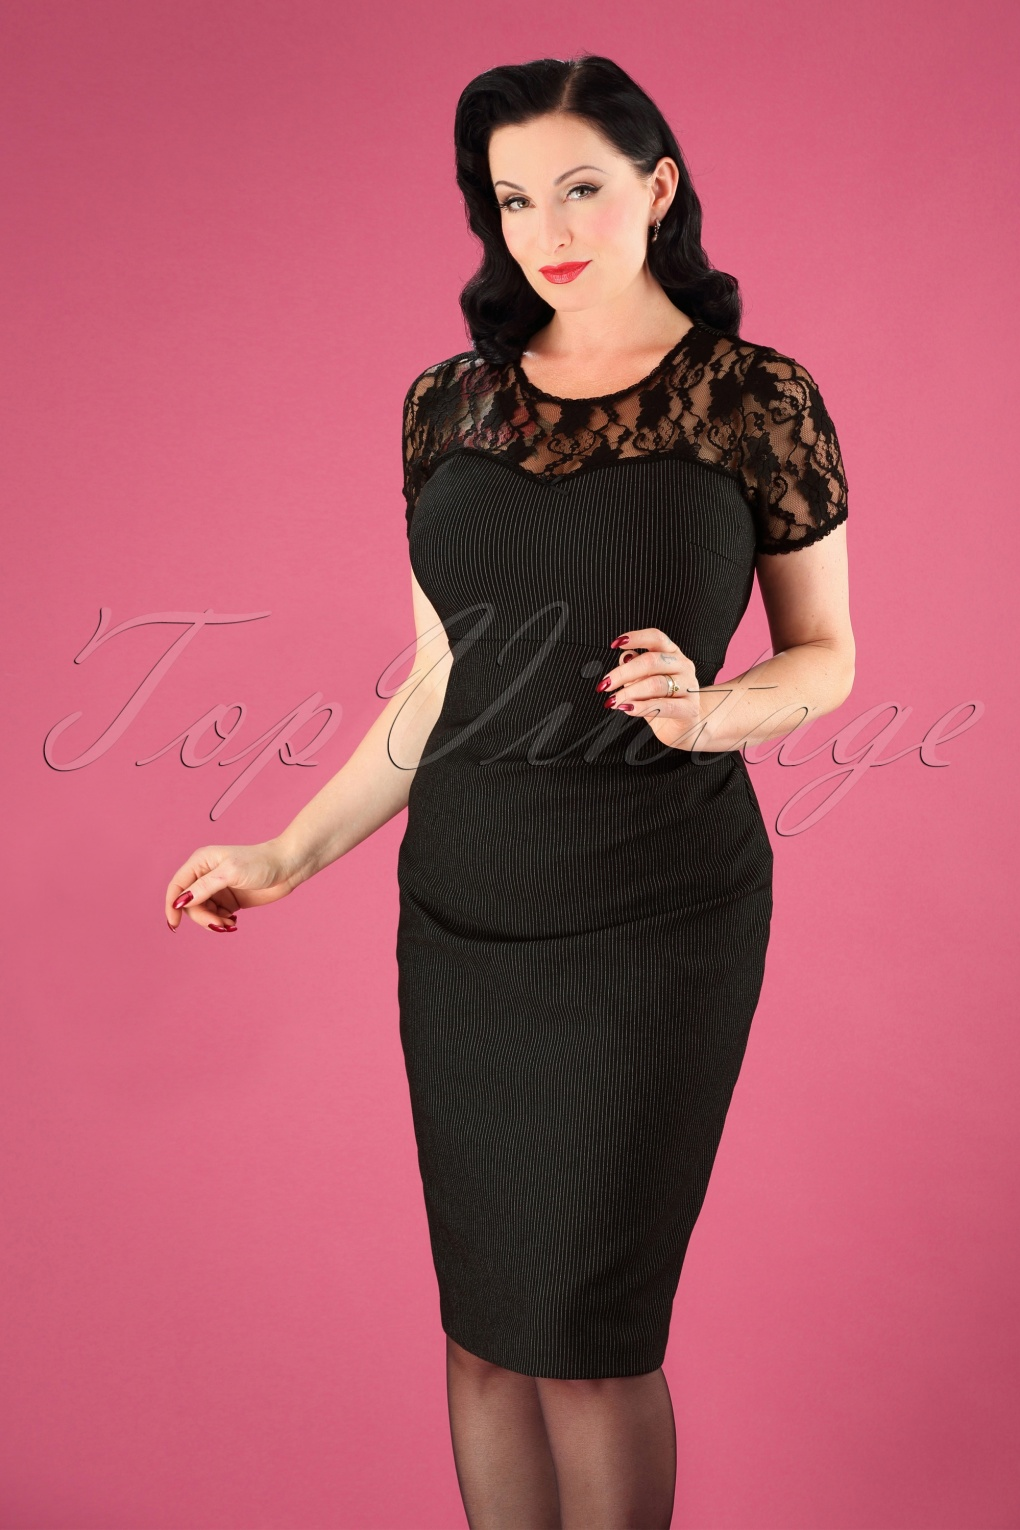 1950s Dresses, 50s Dresses | 1950s Style Dresses 50s Dandy Shape Dress in Black £80.13 AT vintagedancer.com